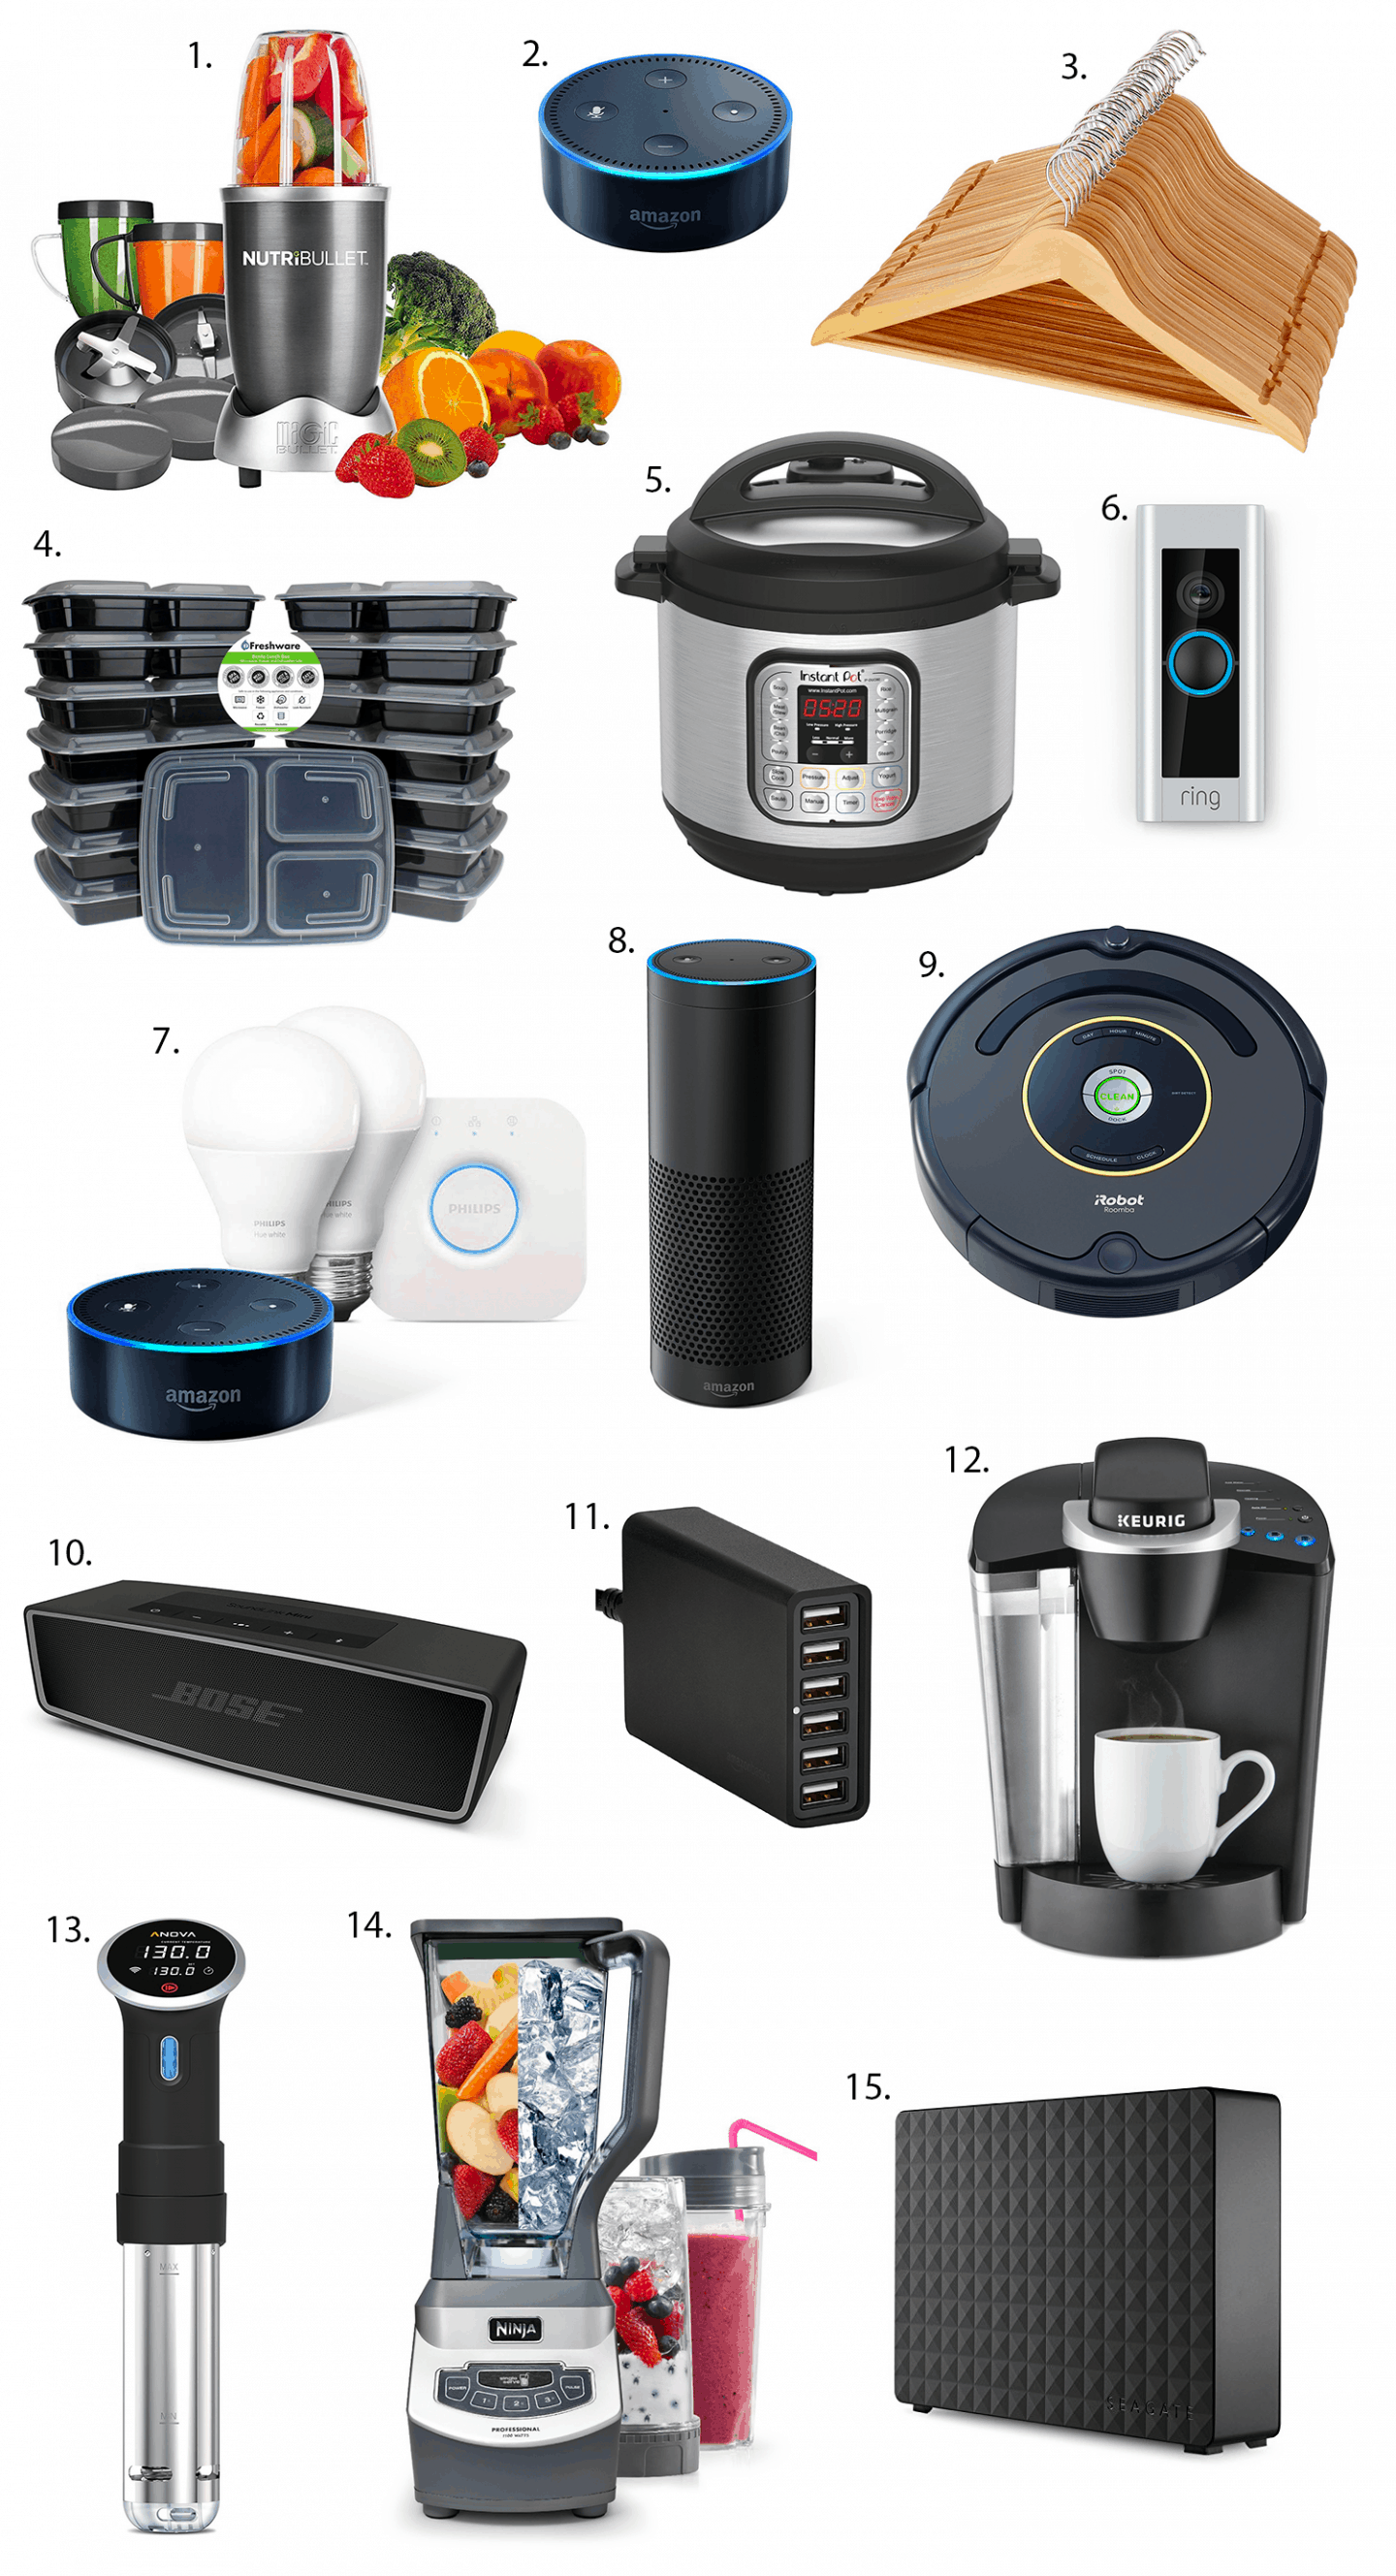 The best deals from Amazon Prime Day - including major sales on the Echo, Echo Dot, Anova Sous Vide, Rumba, Instant Pot, Ninja blender, Ring doorbell, and more!